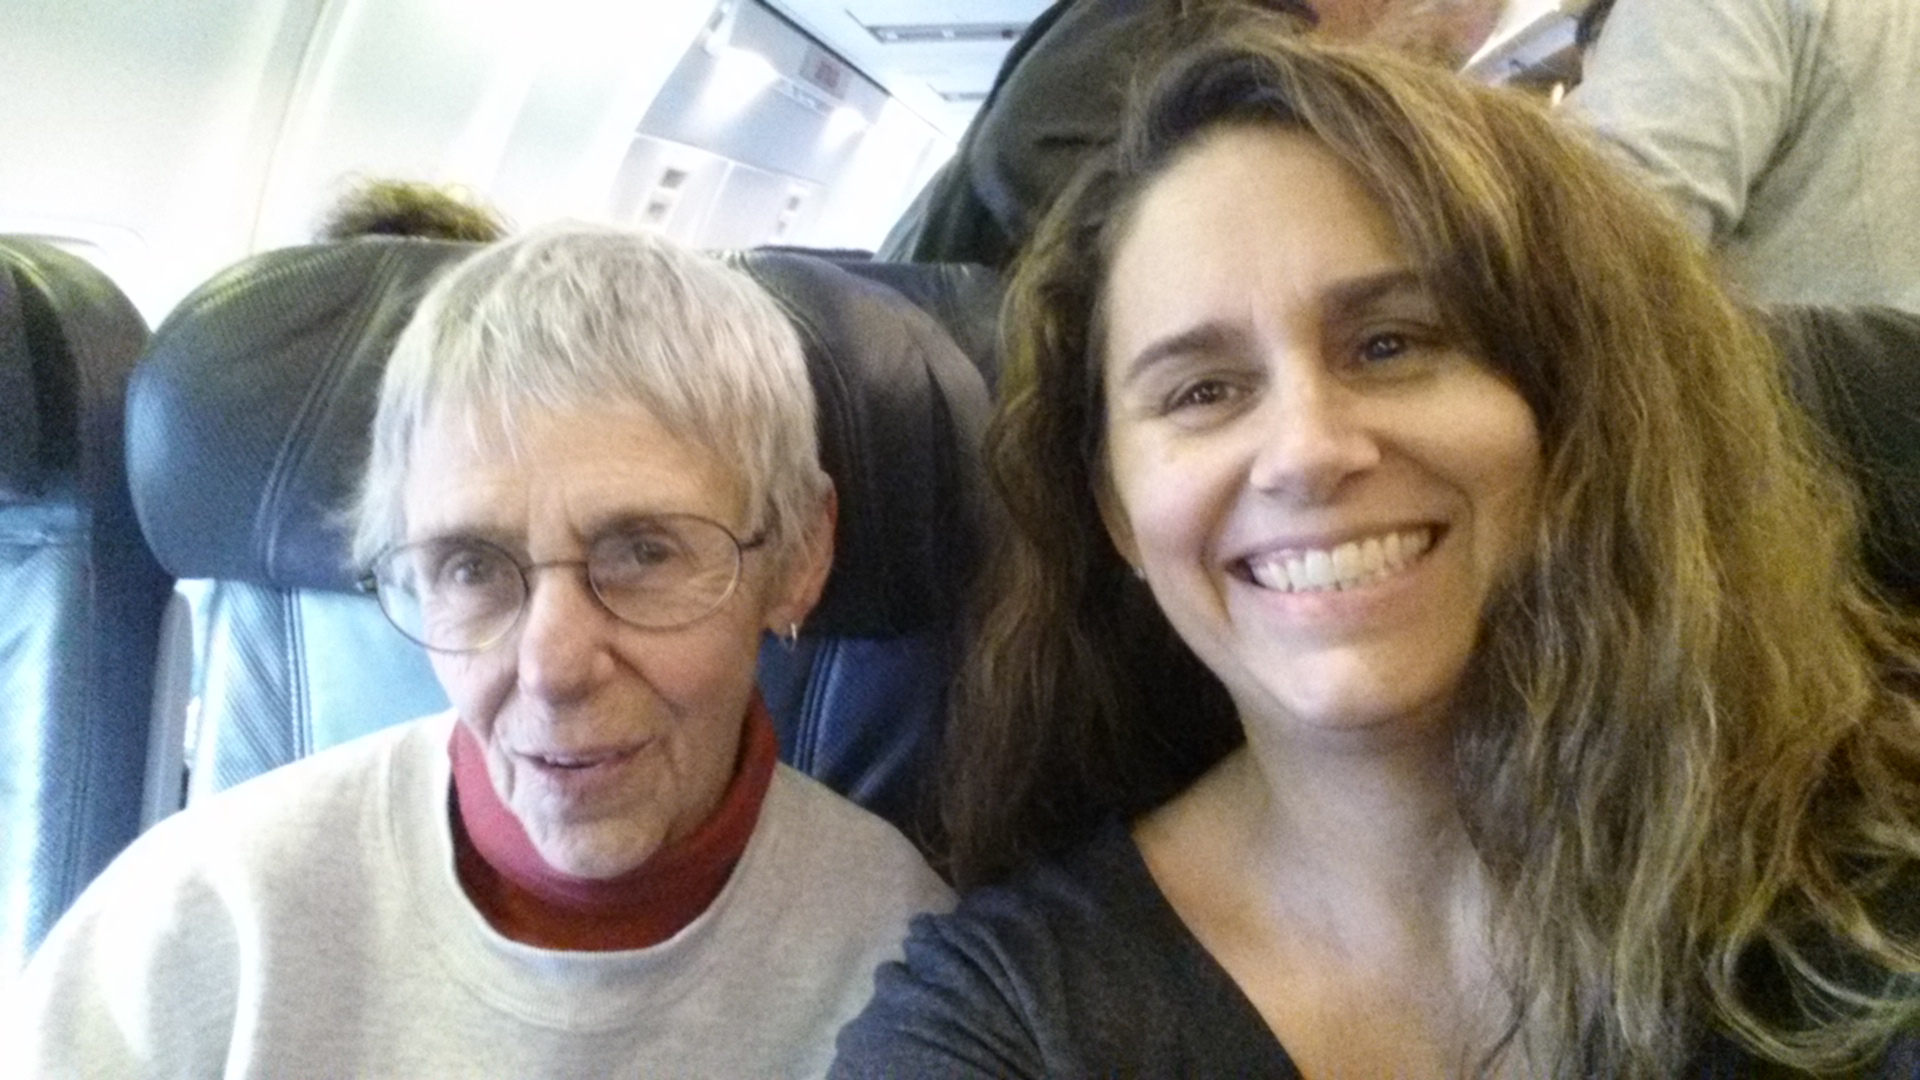 Traveling artists in their element: Jan and Byrdie on a plane to Ketchikan, Alaska, April 2015.